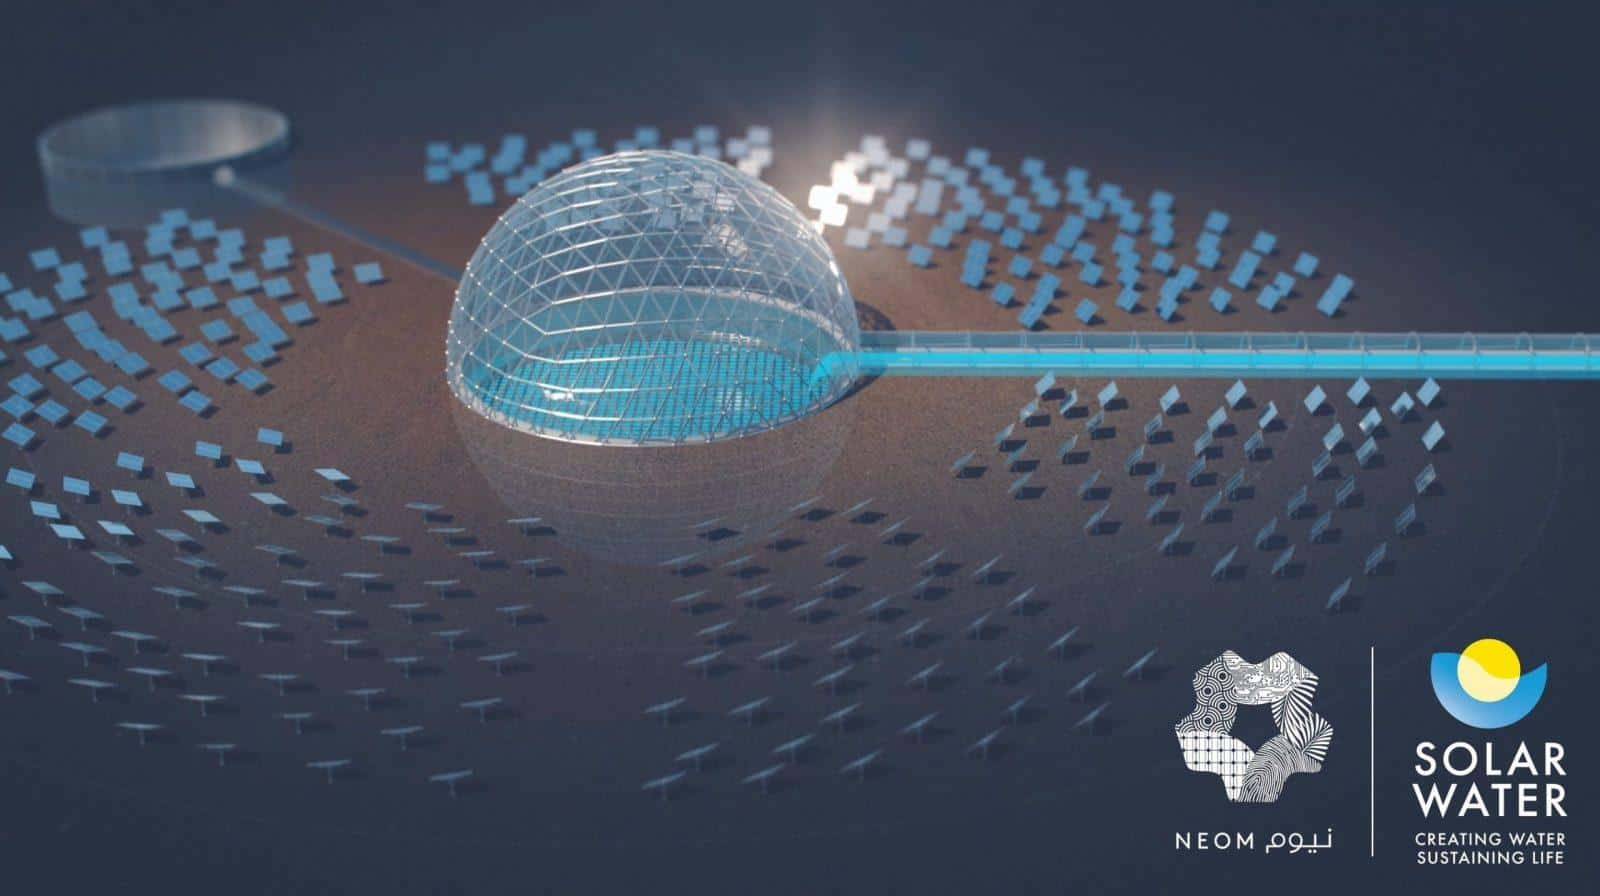 NEOM solar dome technology for water desalination project